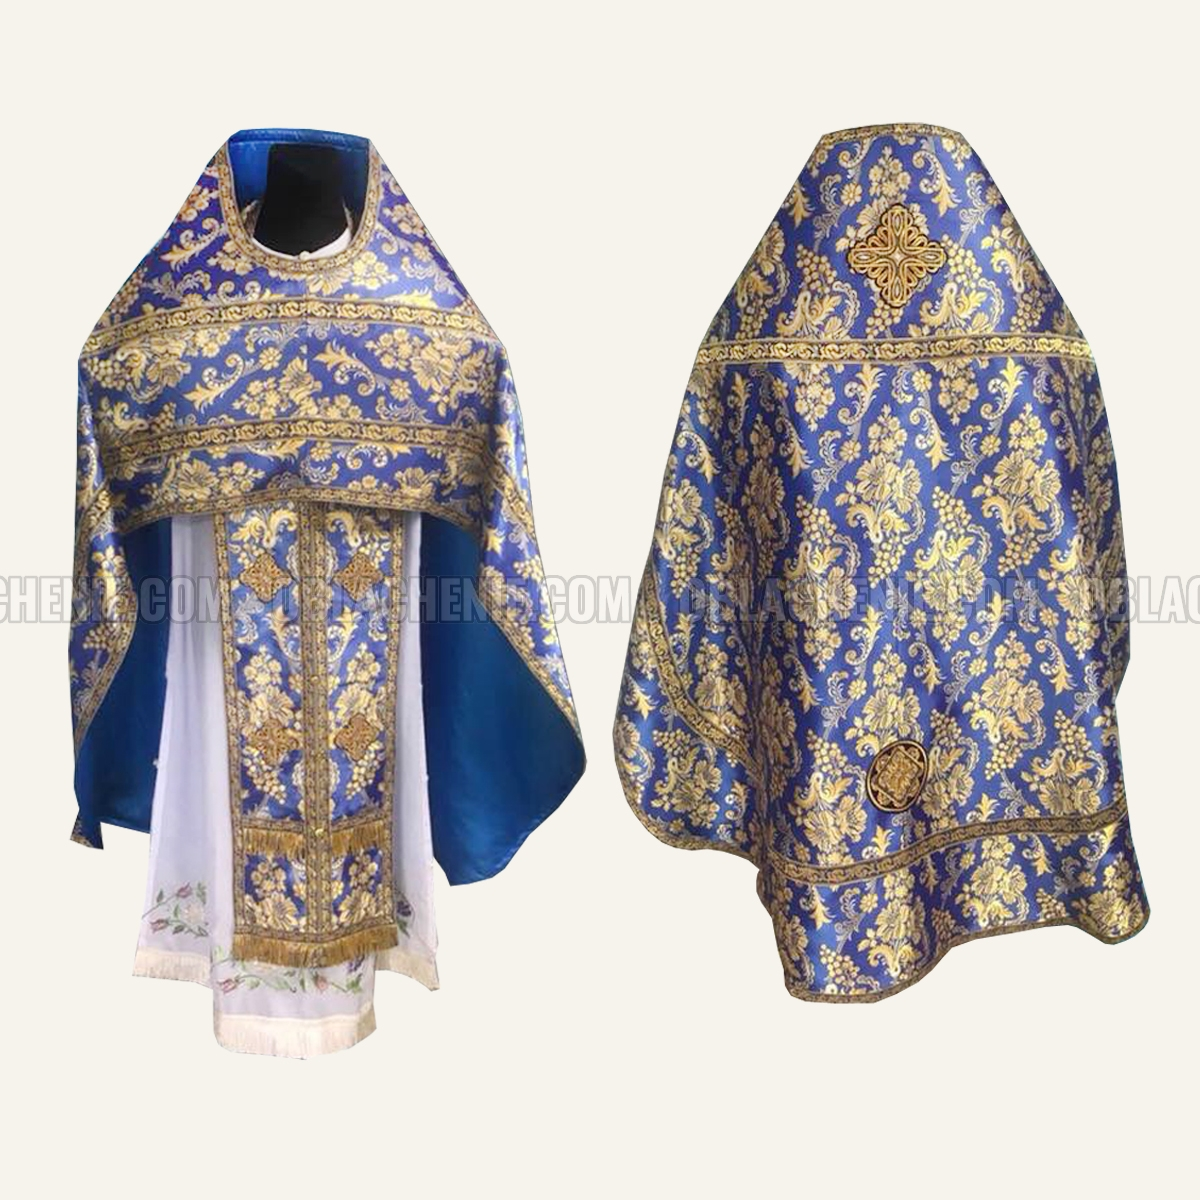 Priest's vestments 10052